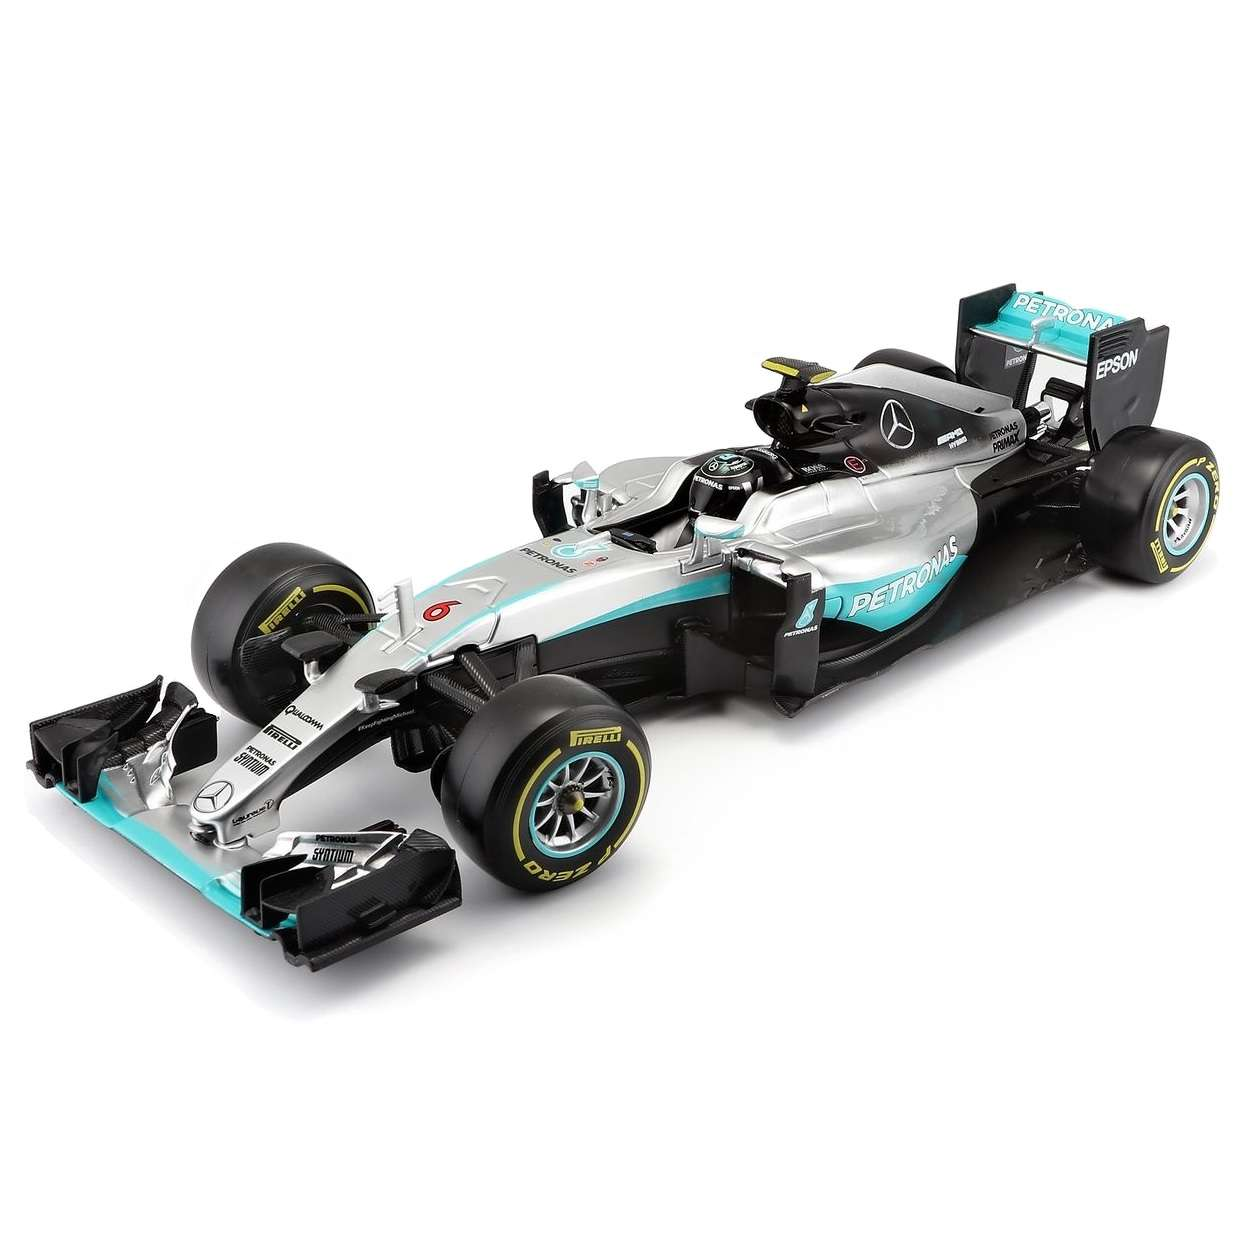 Diecast Car 1/18: Formula 1 - Mercedes AMG F1 FW07 Hybrid, 2016 Photo